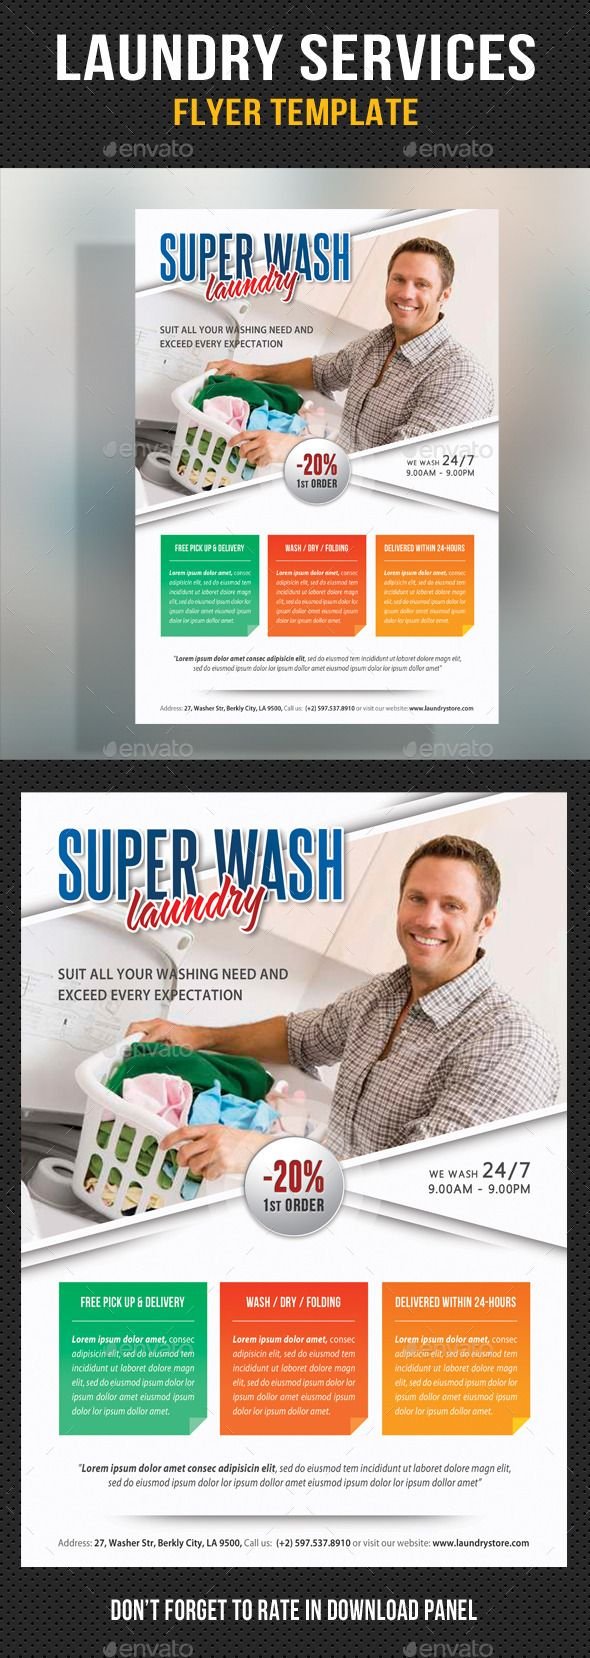 laundry flyers templates - the 25 best laundry service ideas on pinterest utility